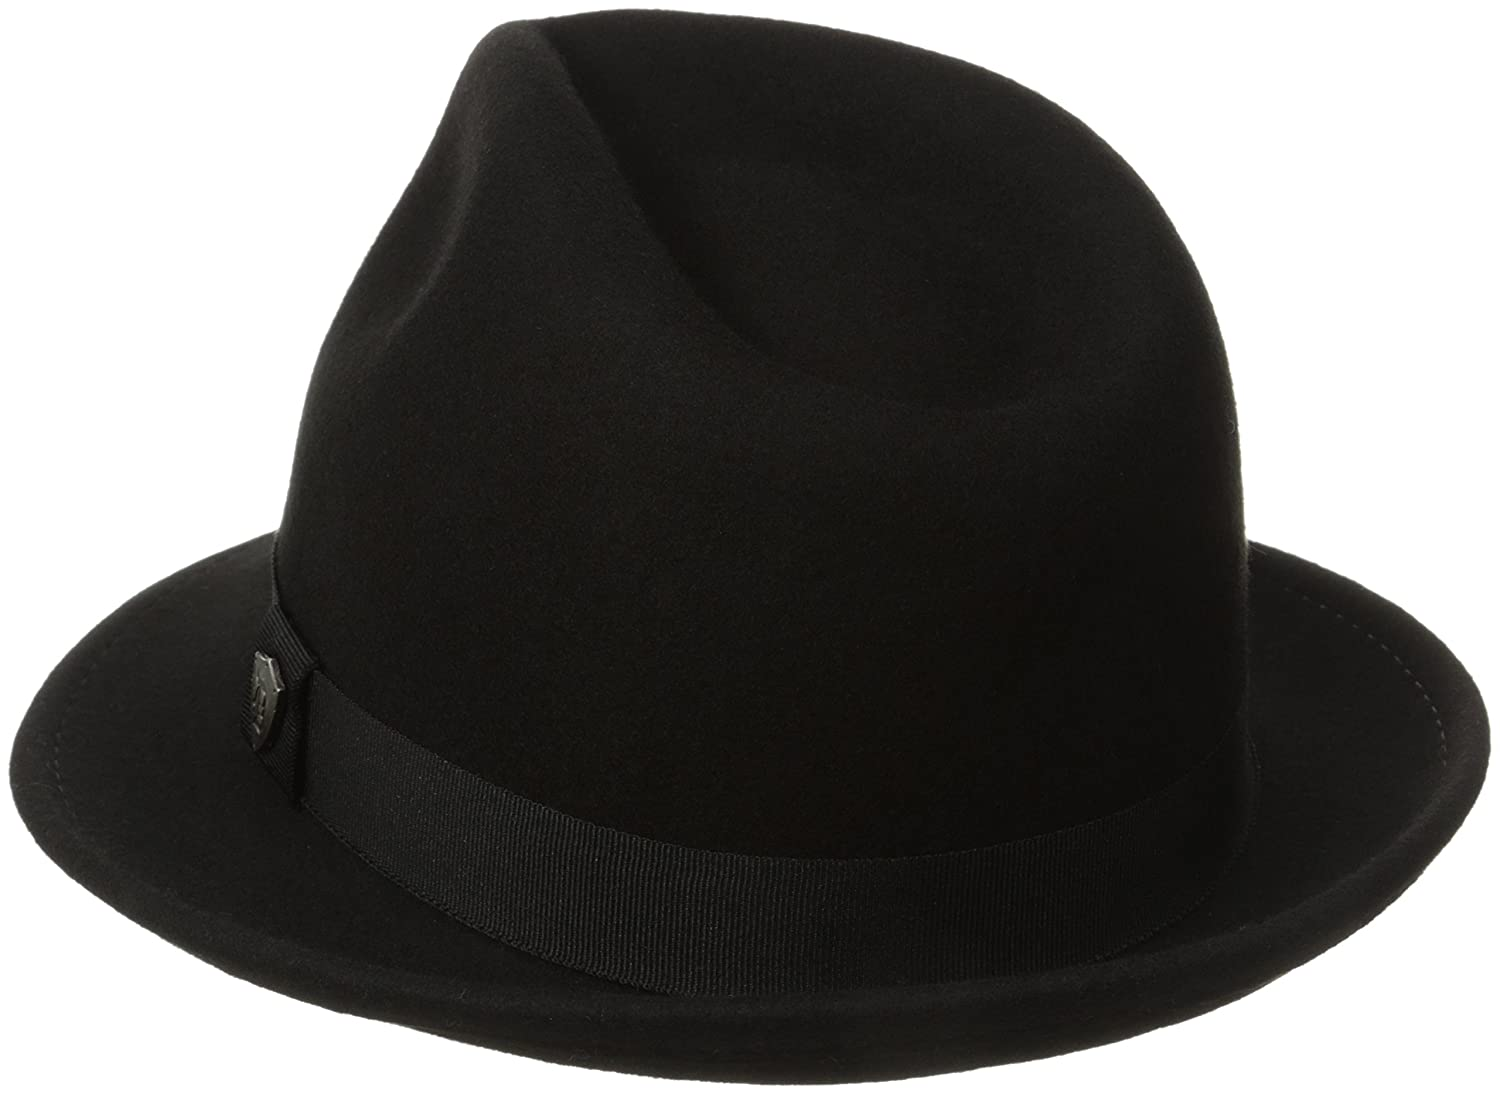 50s Costumes | 50s Halloween Costumes Dorfman Wool Felt Hat $44.95 AT vintagedancer.com